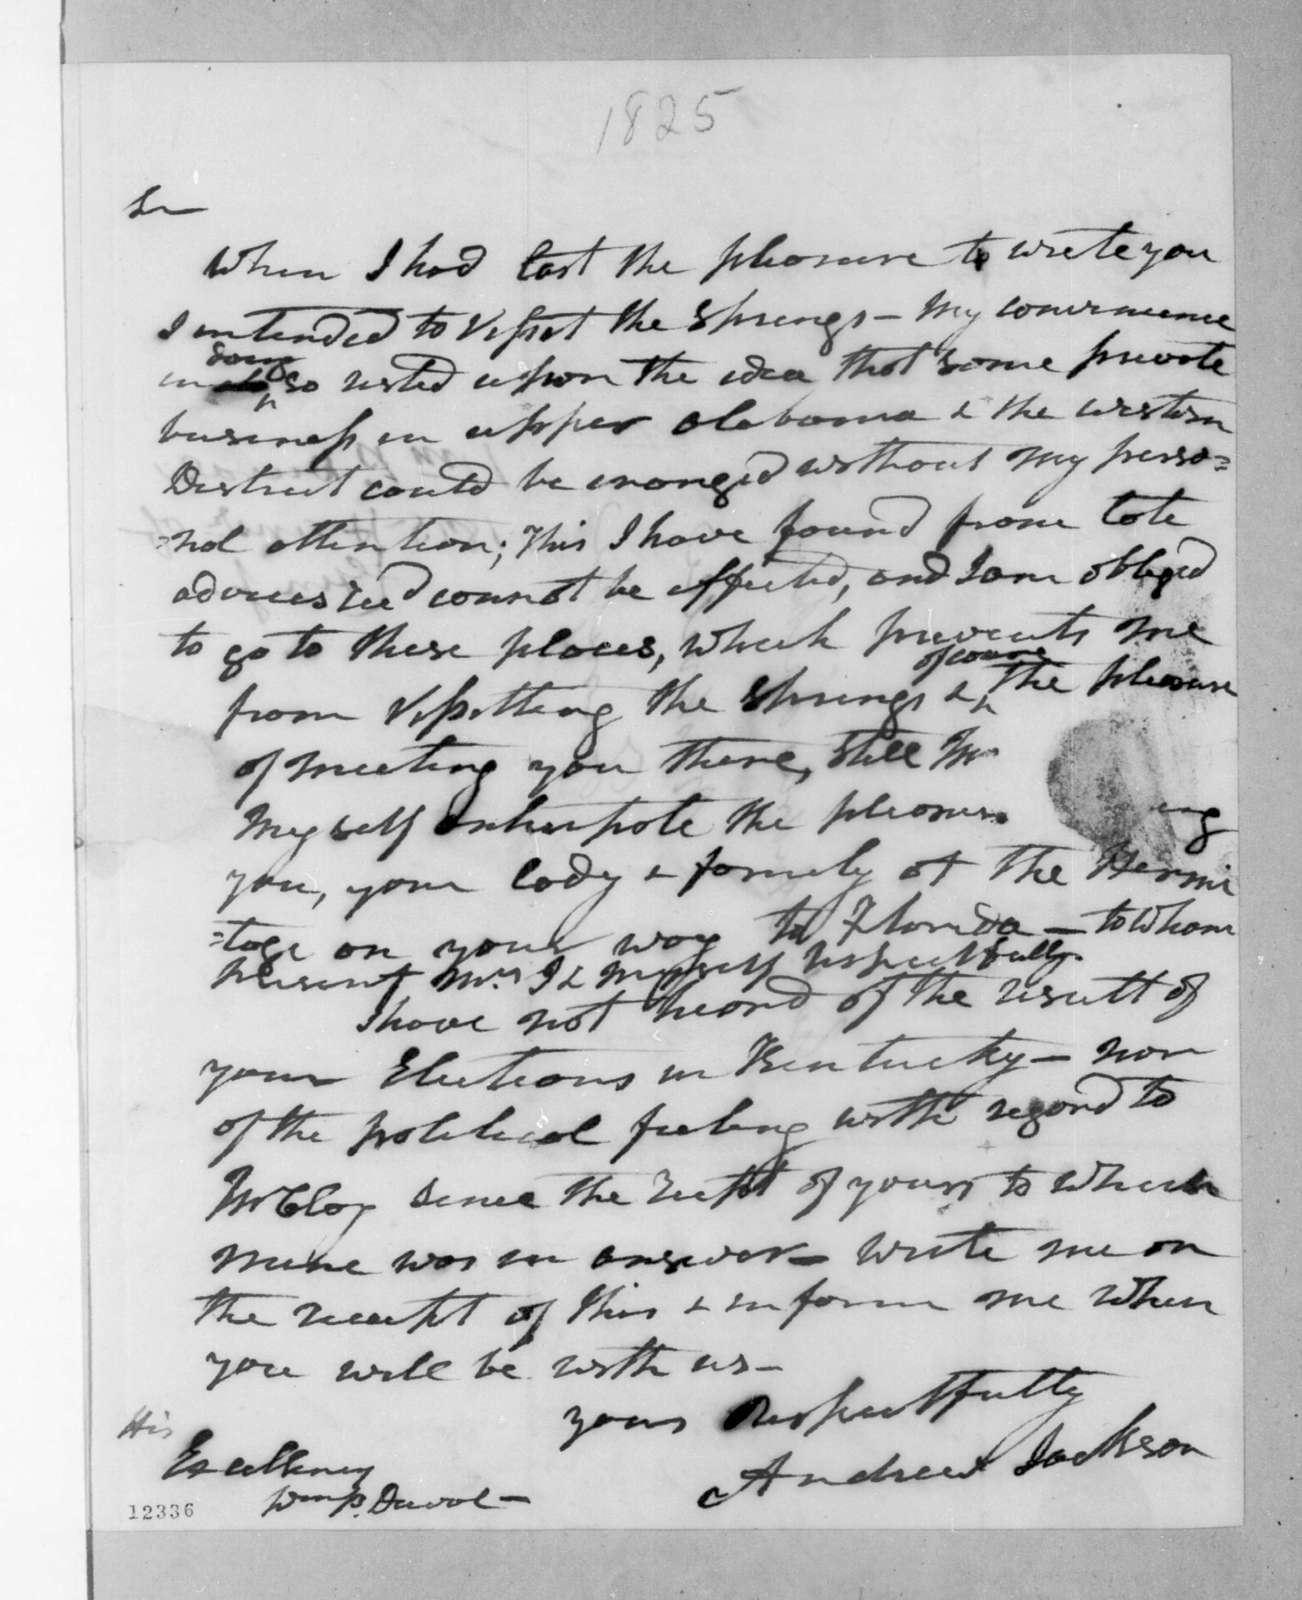 Andrew Jackson to William Pope Duval, July 5, 1825